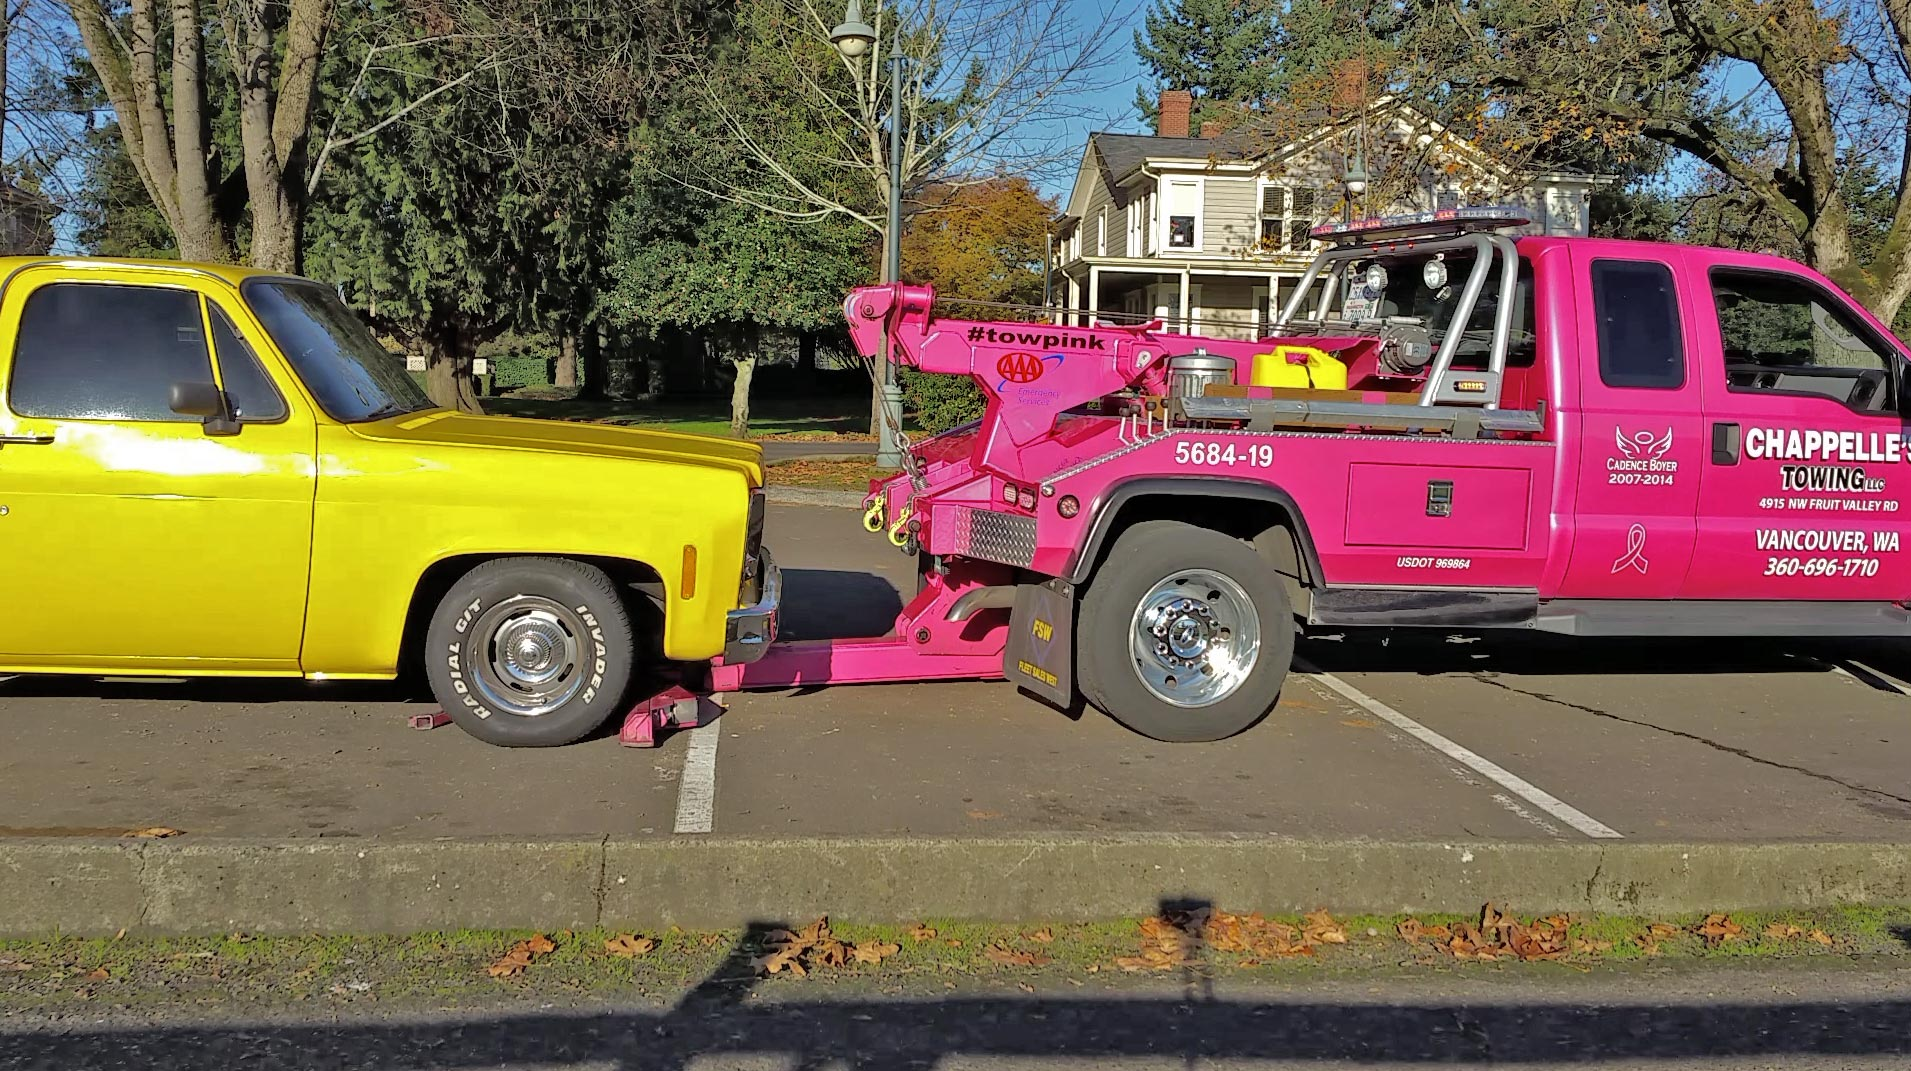 AAA Towing Service Roadside Assistance Vancouver WA